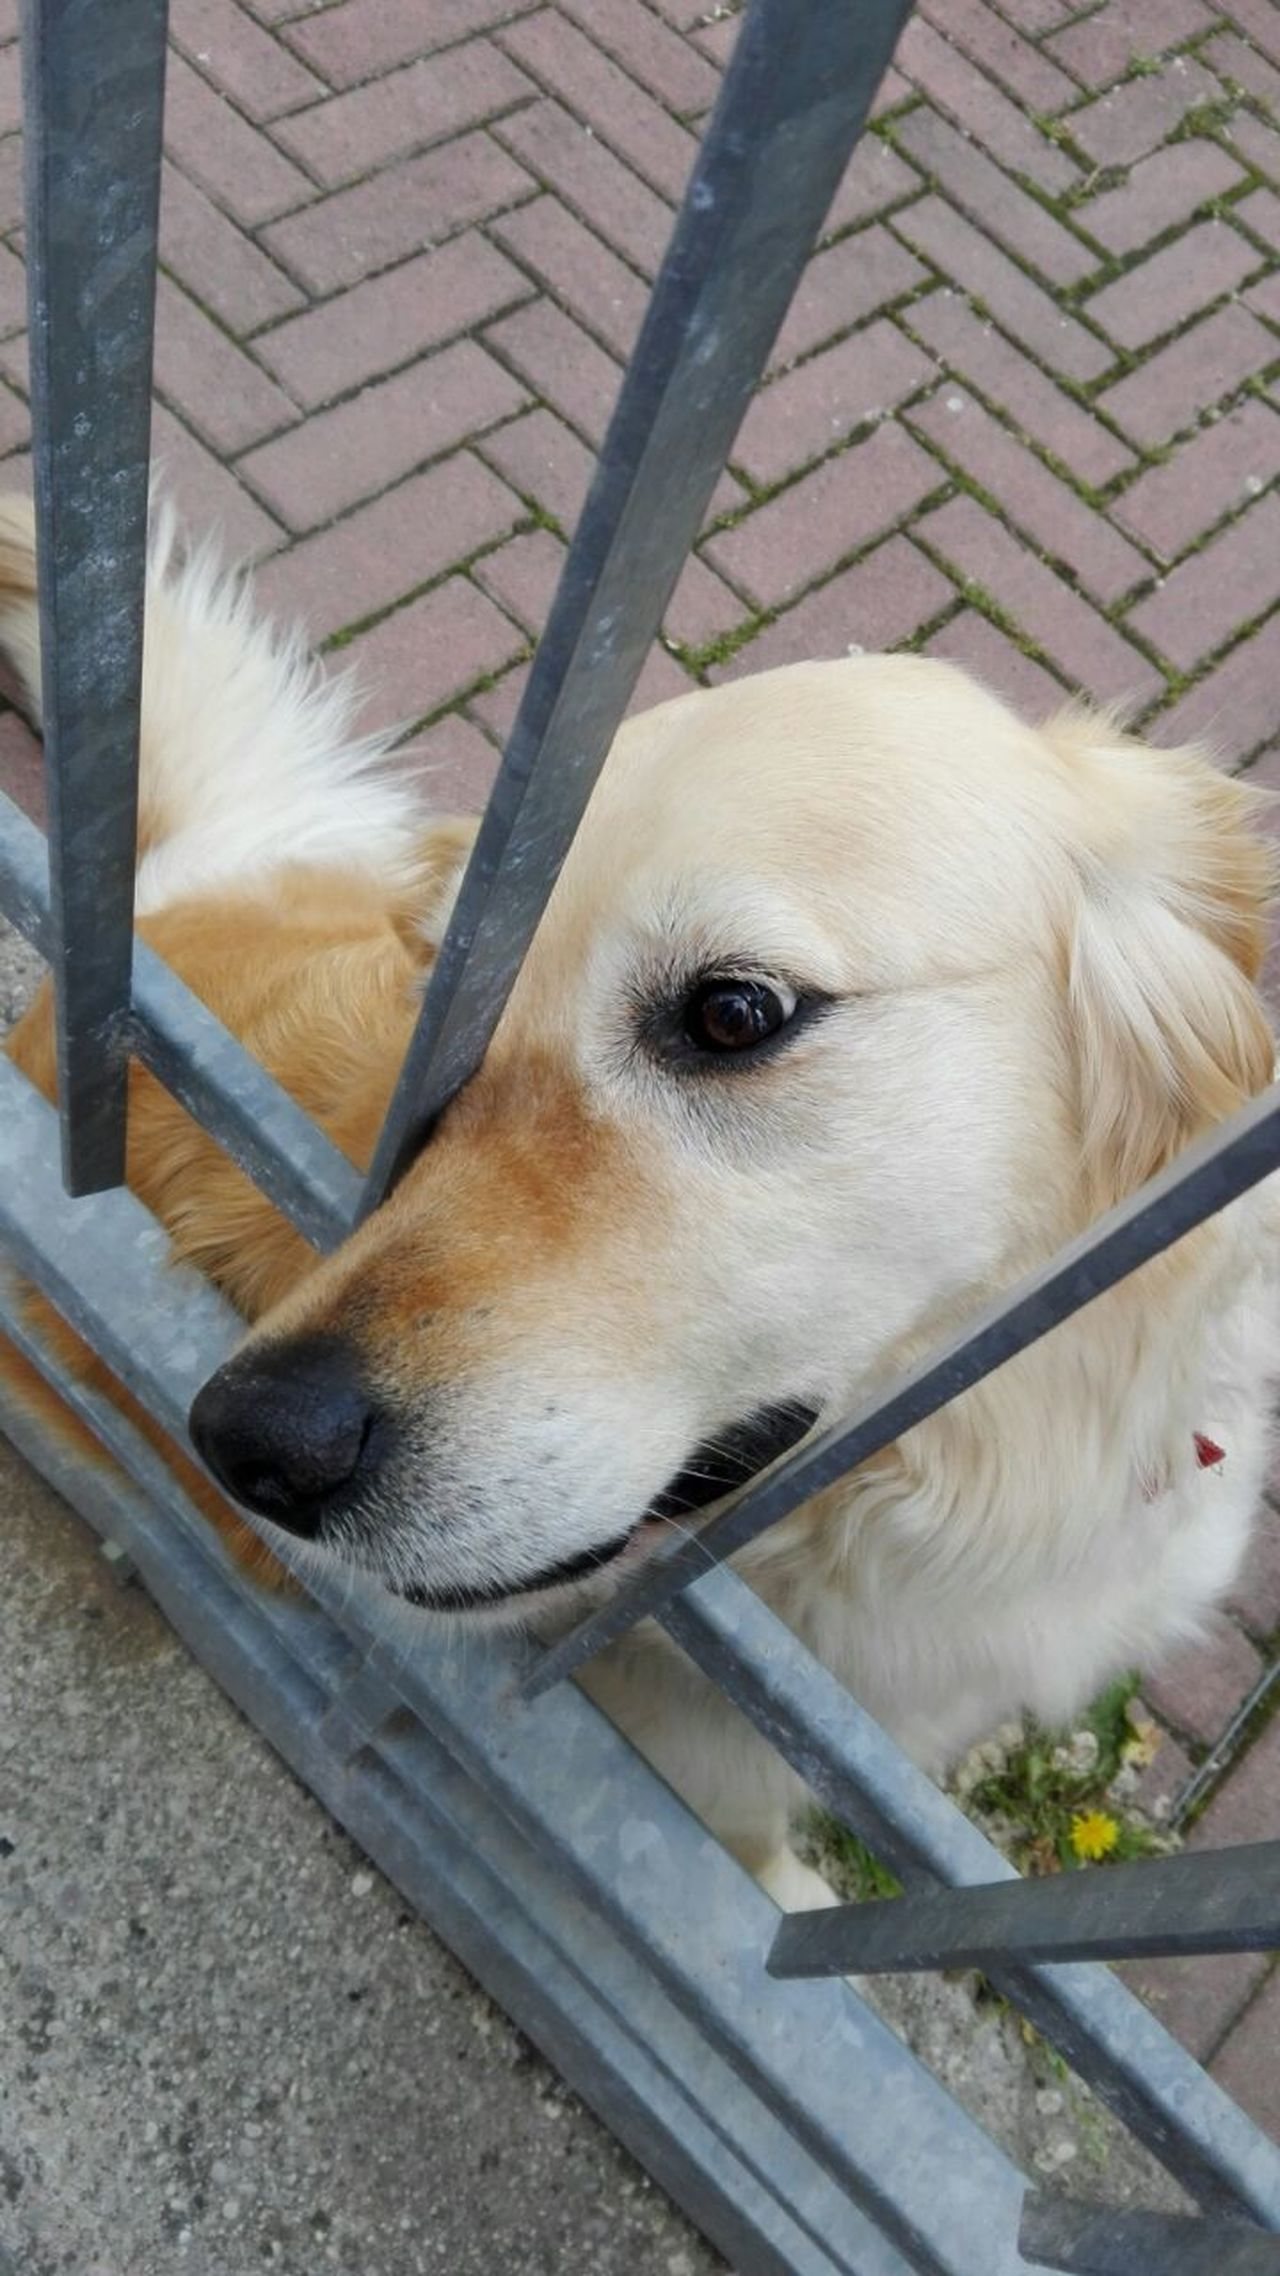 Dog Pets One Animal Domestic Animals Animal Themes Outdoors Day Morning Emotions Quite Love Italy Beauty Street Fragility Close-up Cute Pets Cute Love You Little Dog Spring Walking Emotions Captured Sensation Emotions. .. City